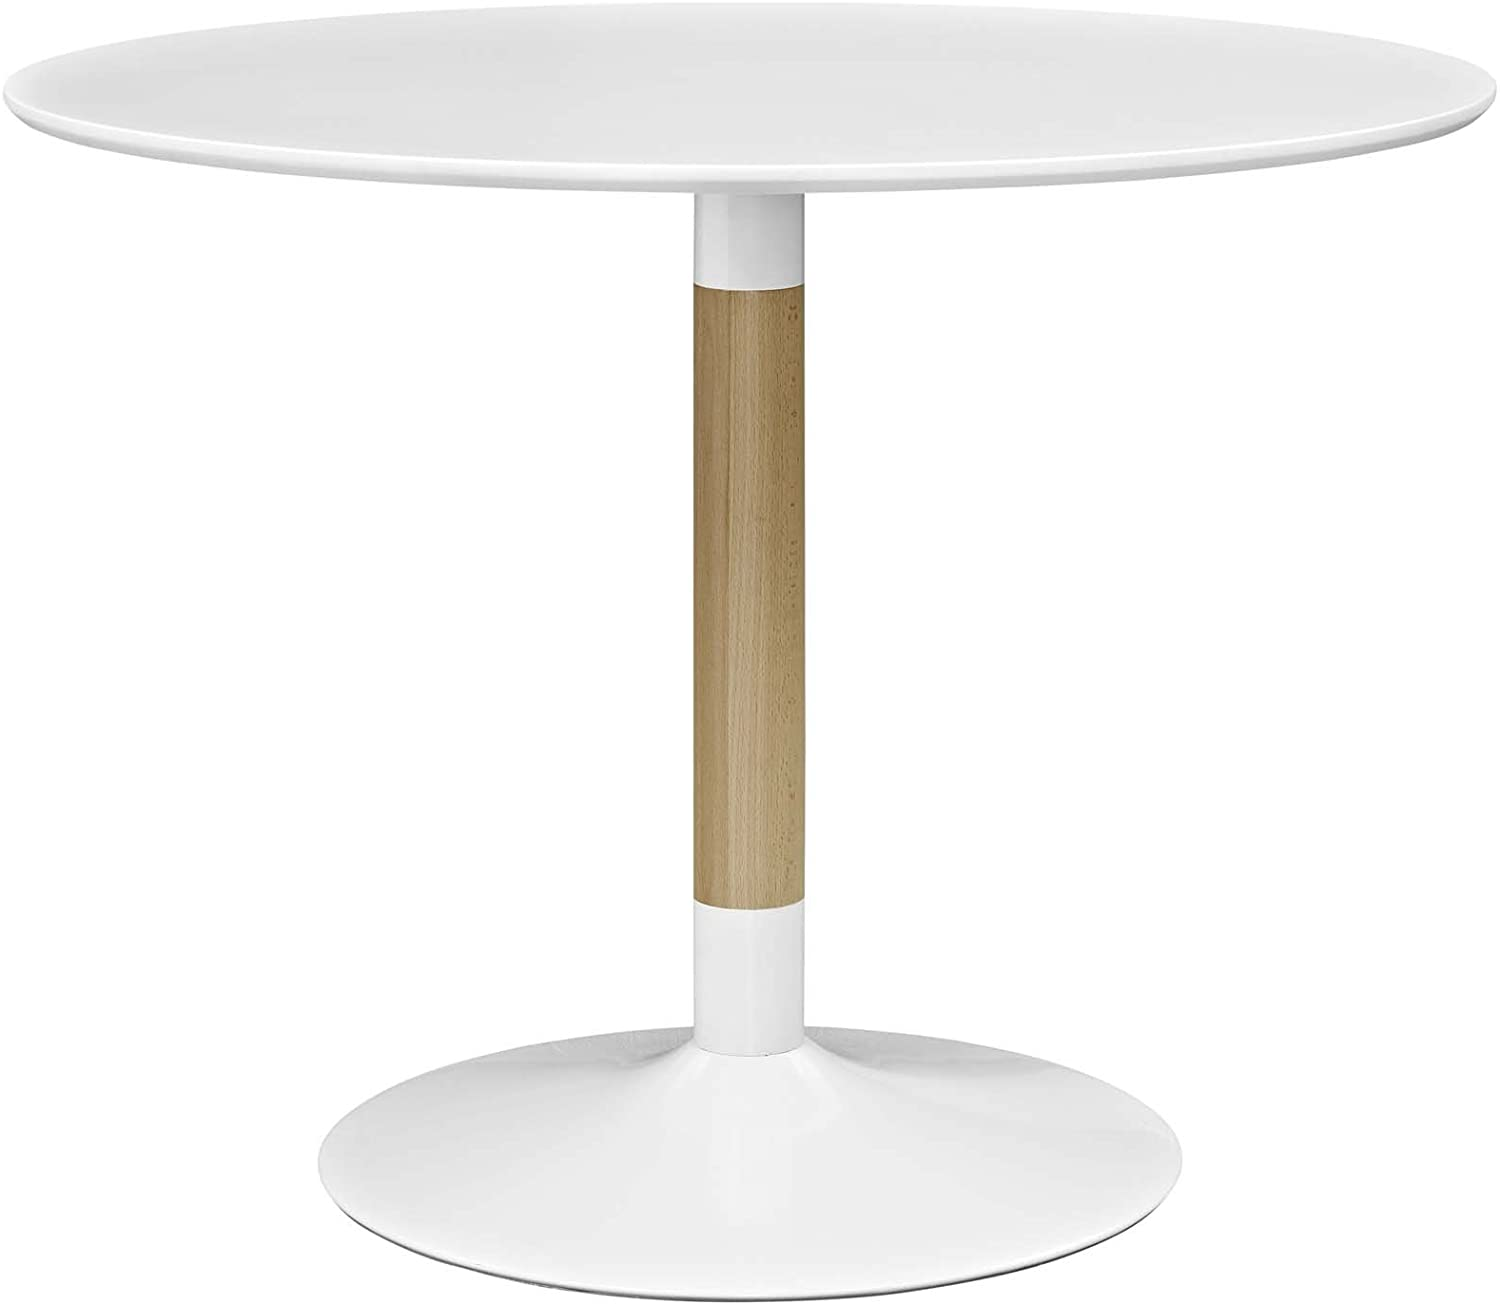 "Modway Whirl 40"" Contemporary Modern Round Kitchen and Dining Table in White"